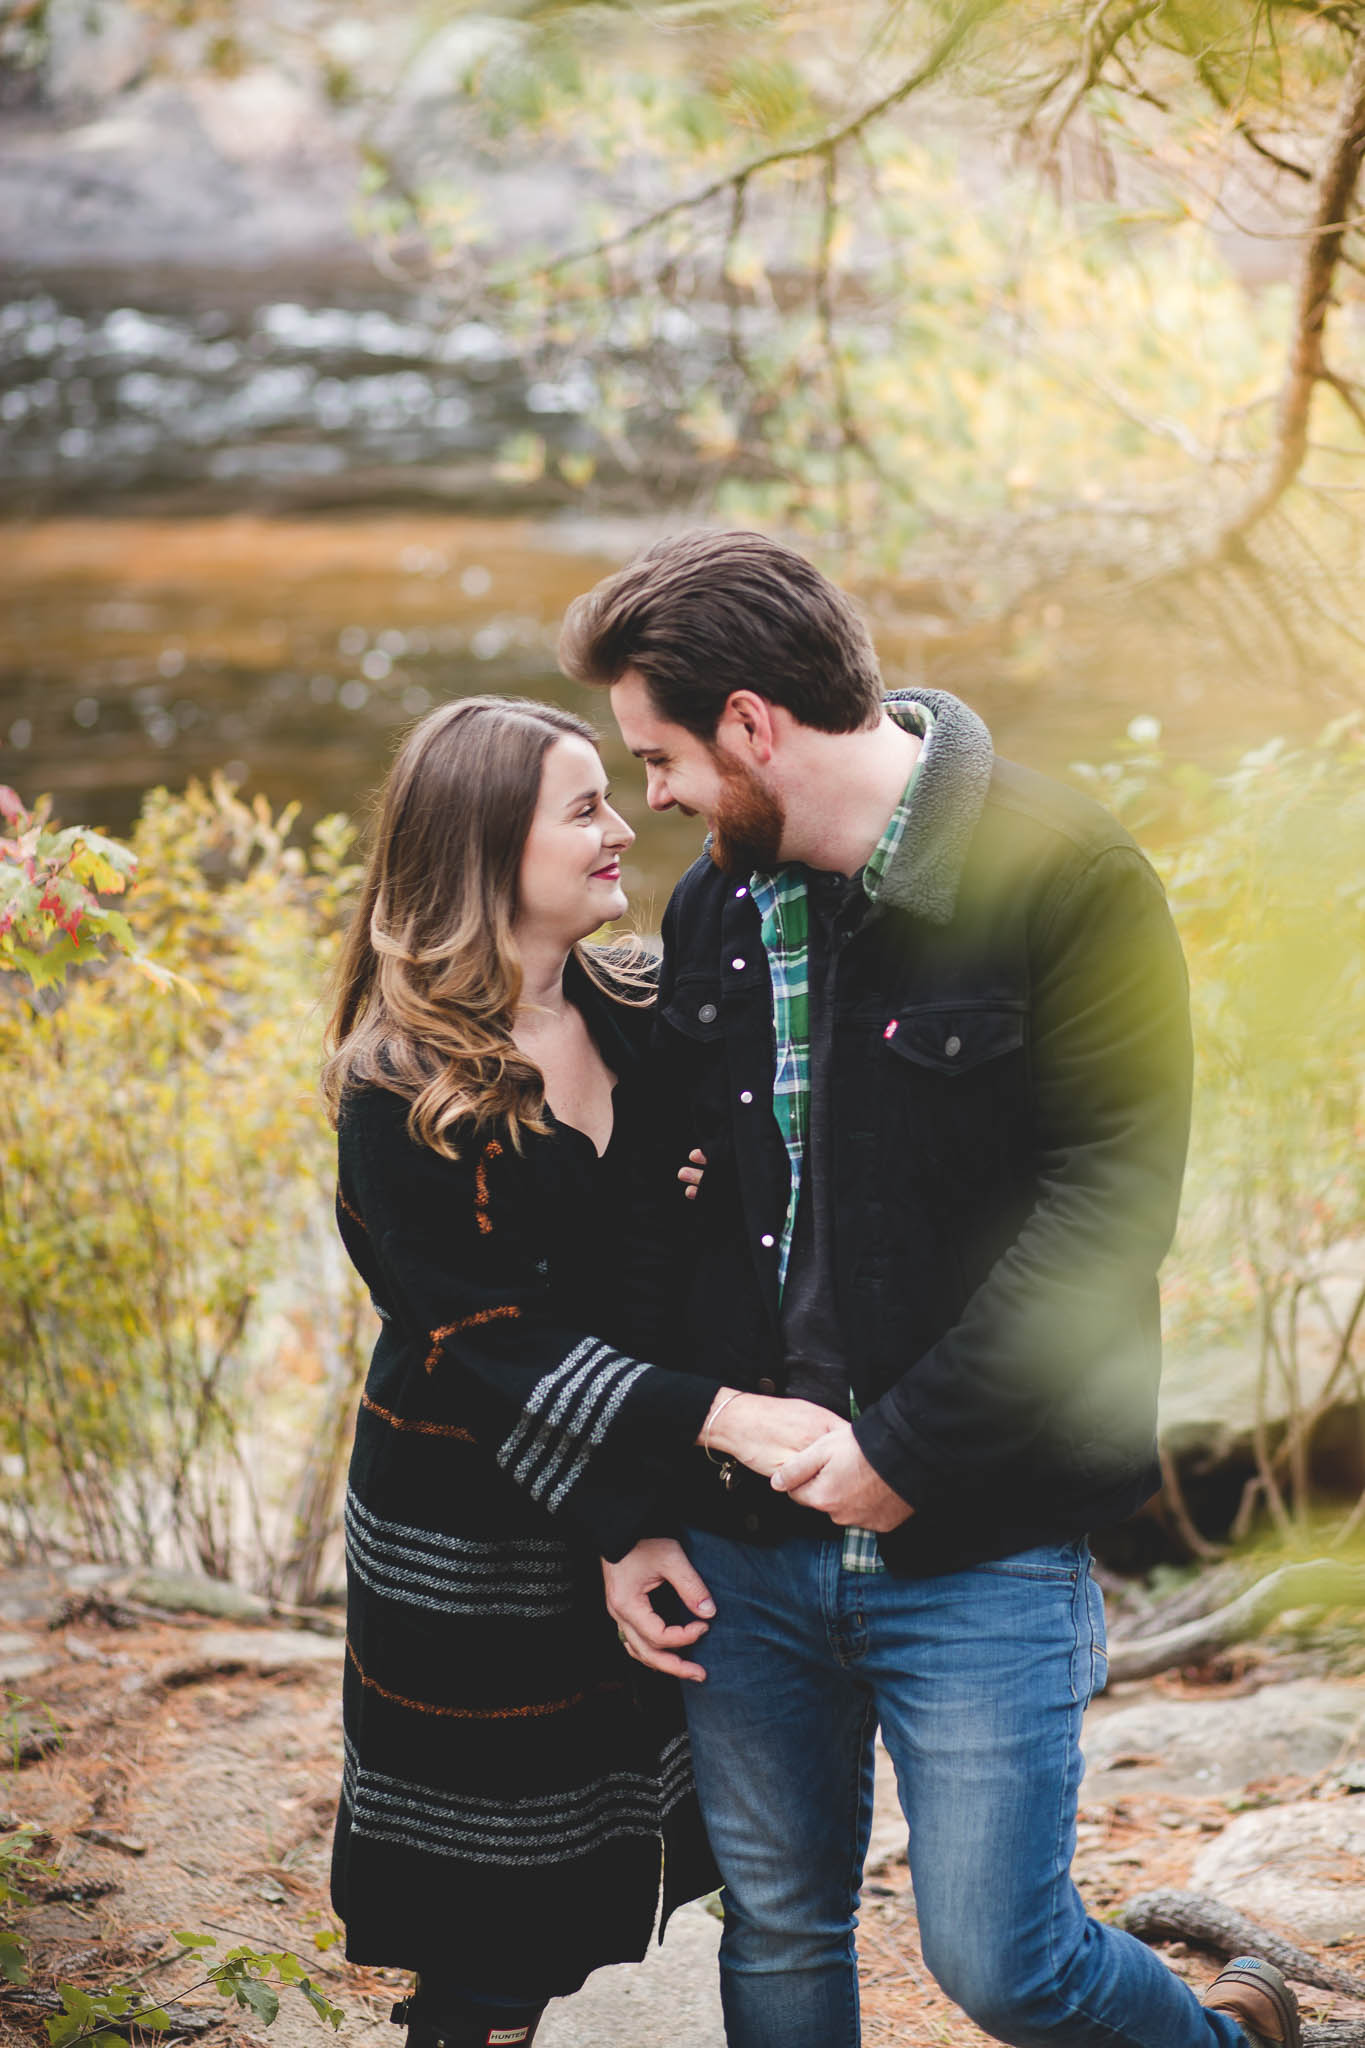 Amy D Photography- Fall Engagement Session- Fall Wedding- Engagement Session Poses- Engagement Poses- Wedding Photography Barrie-Fall Engagement  (82 of 90).jpg